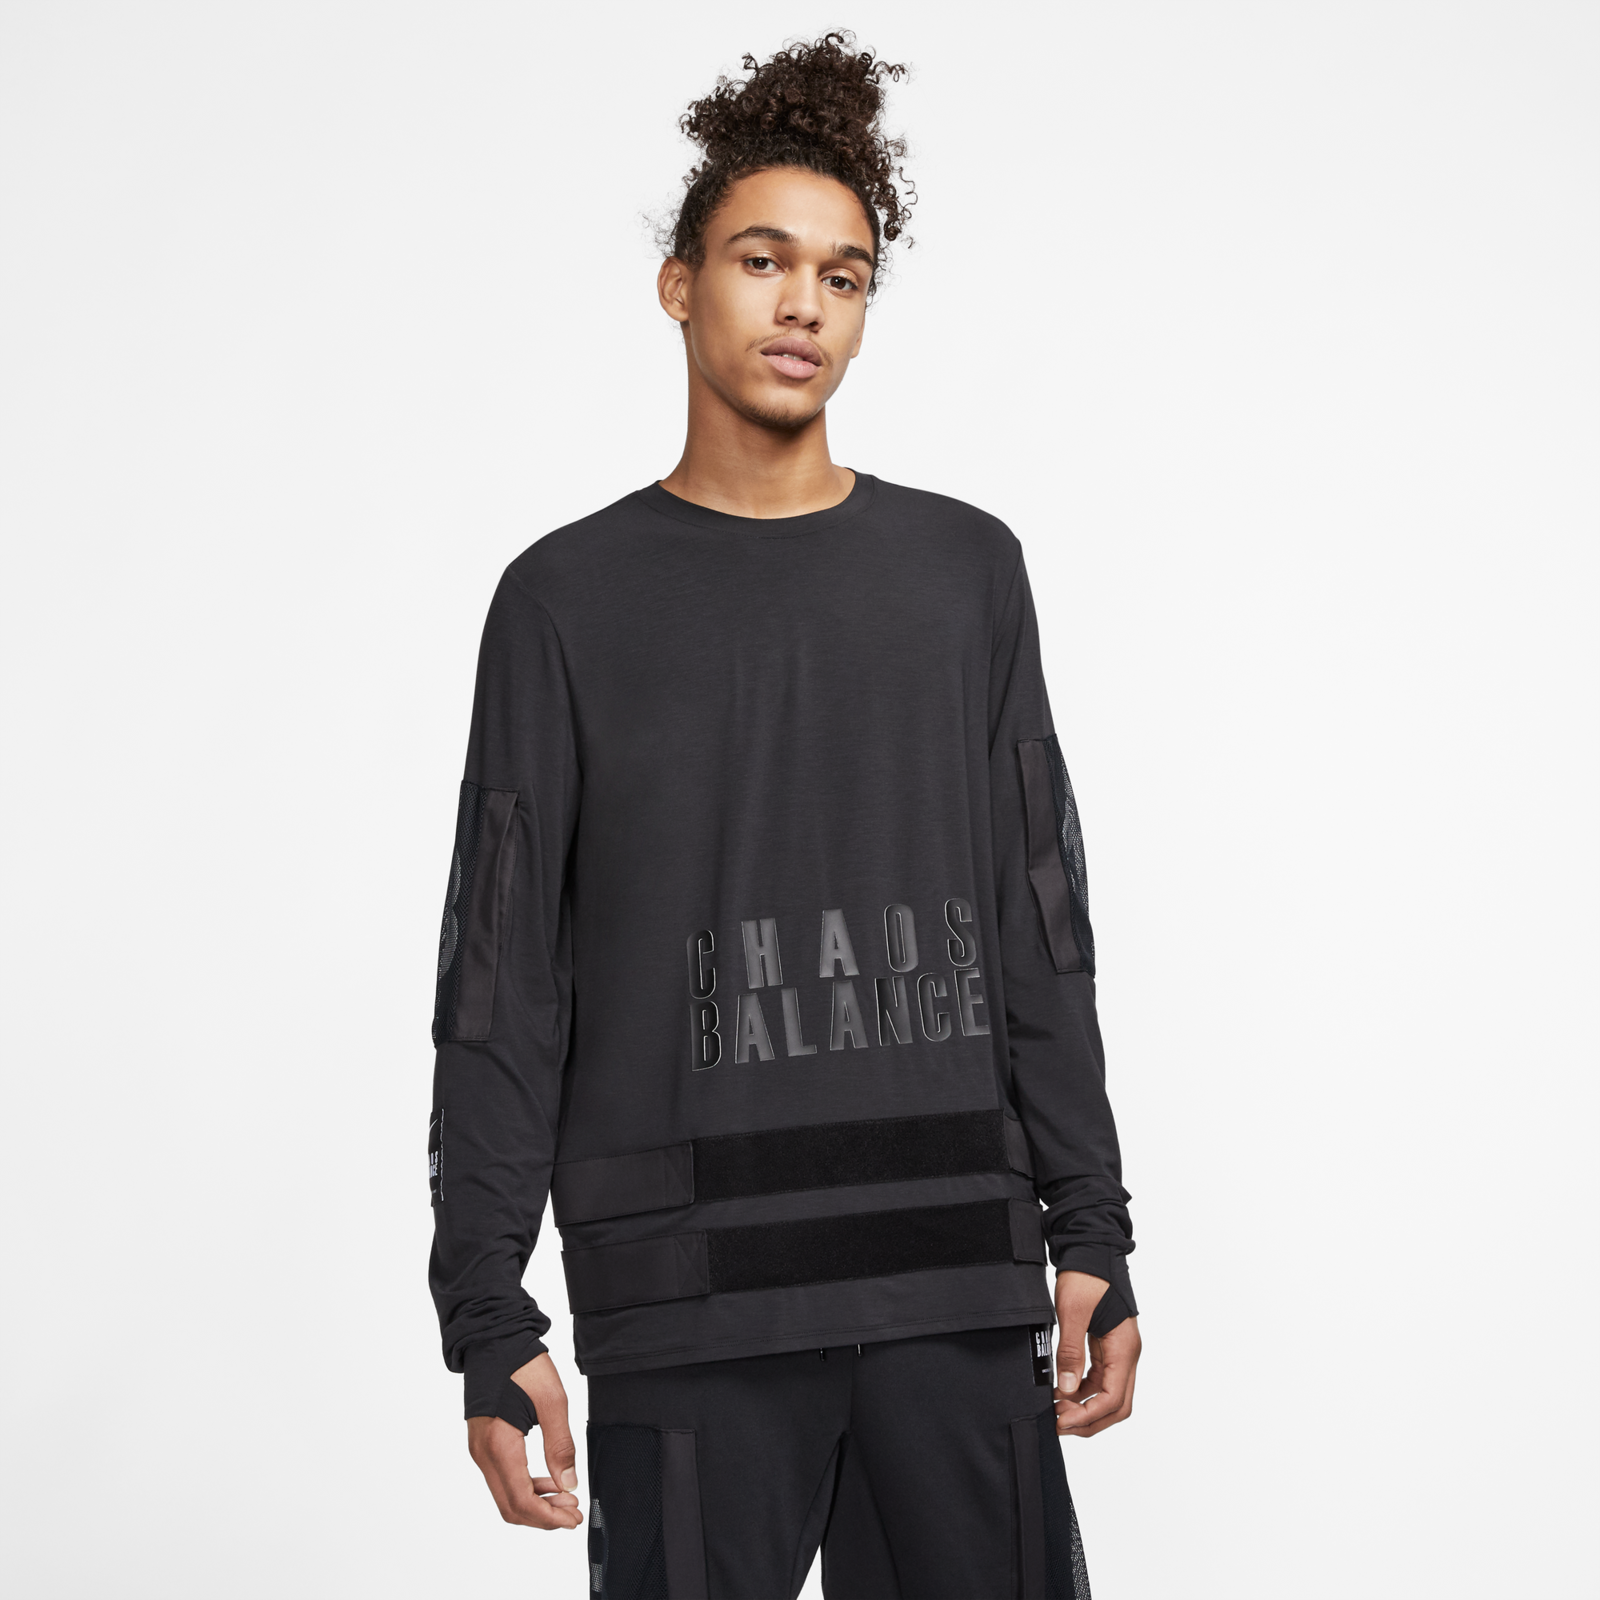 Nike x UNDERCOVER Track Suit, T-Shirt and Longsleeve 35